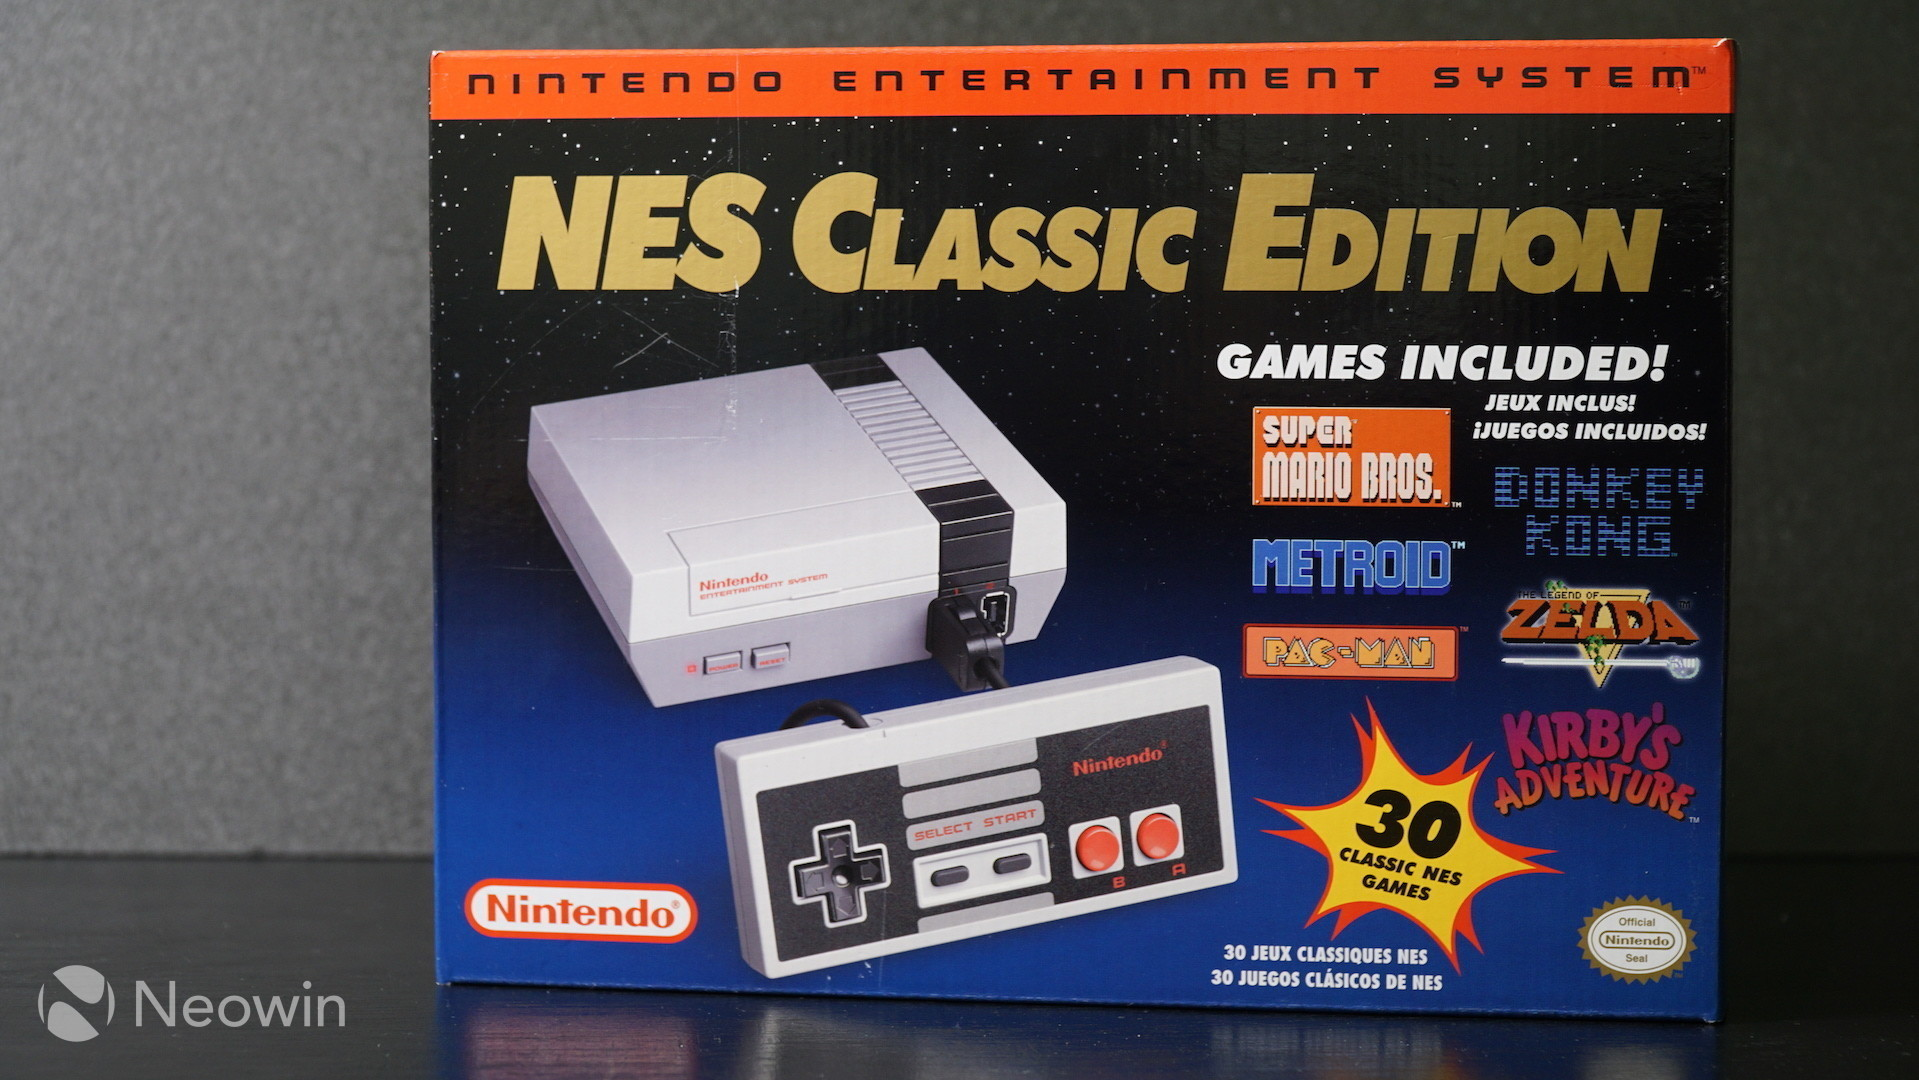 Rip The Nes Dies Again As Nintendo Discontinues The Classic